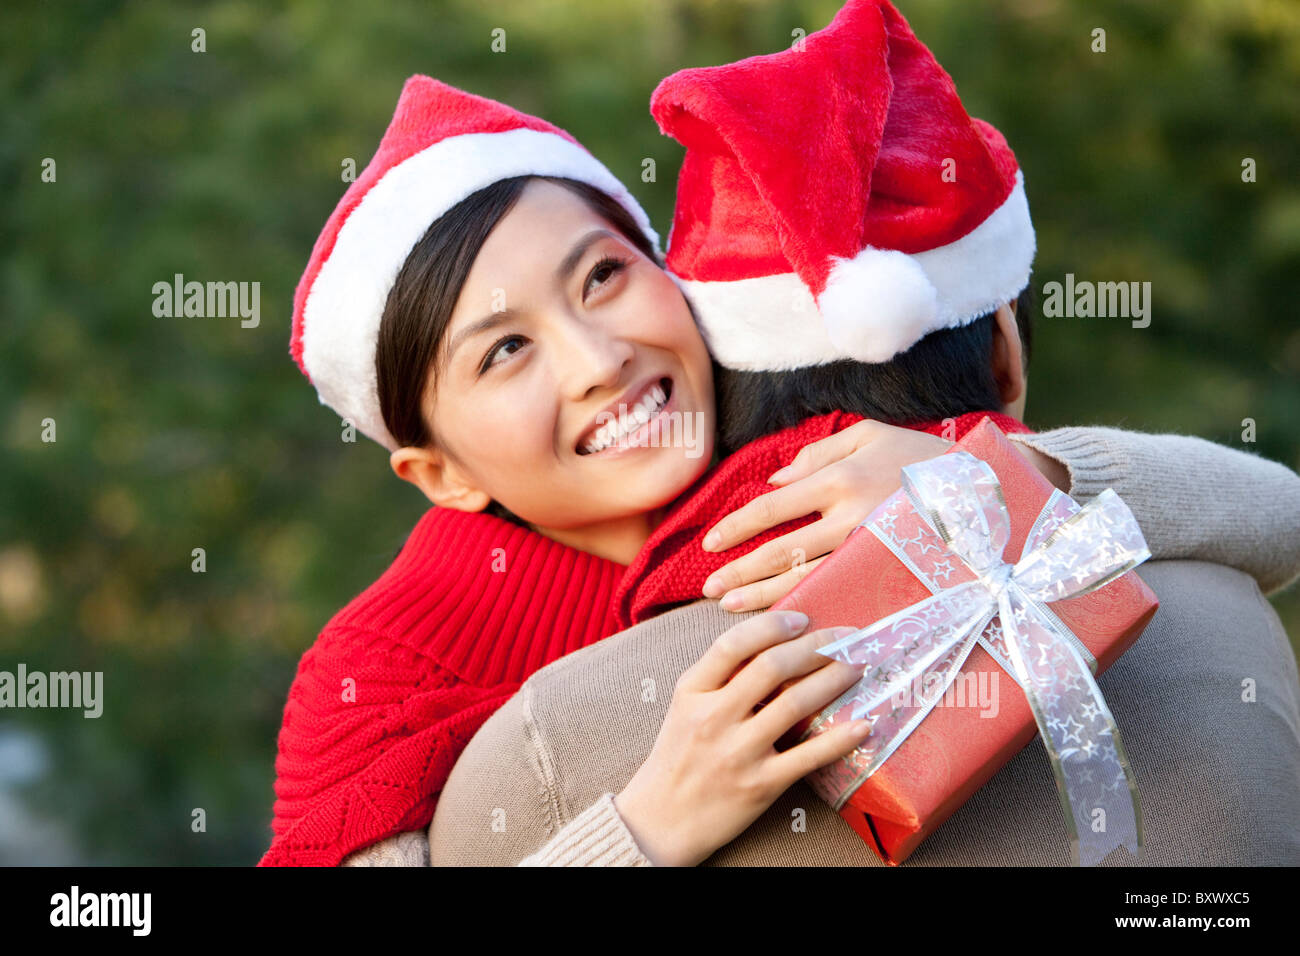 Young Woman Embraces Young Man while Holding Christmas Gift - Stock Image